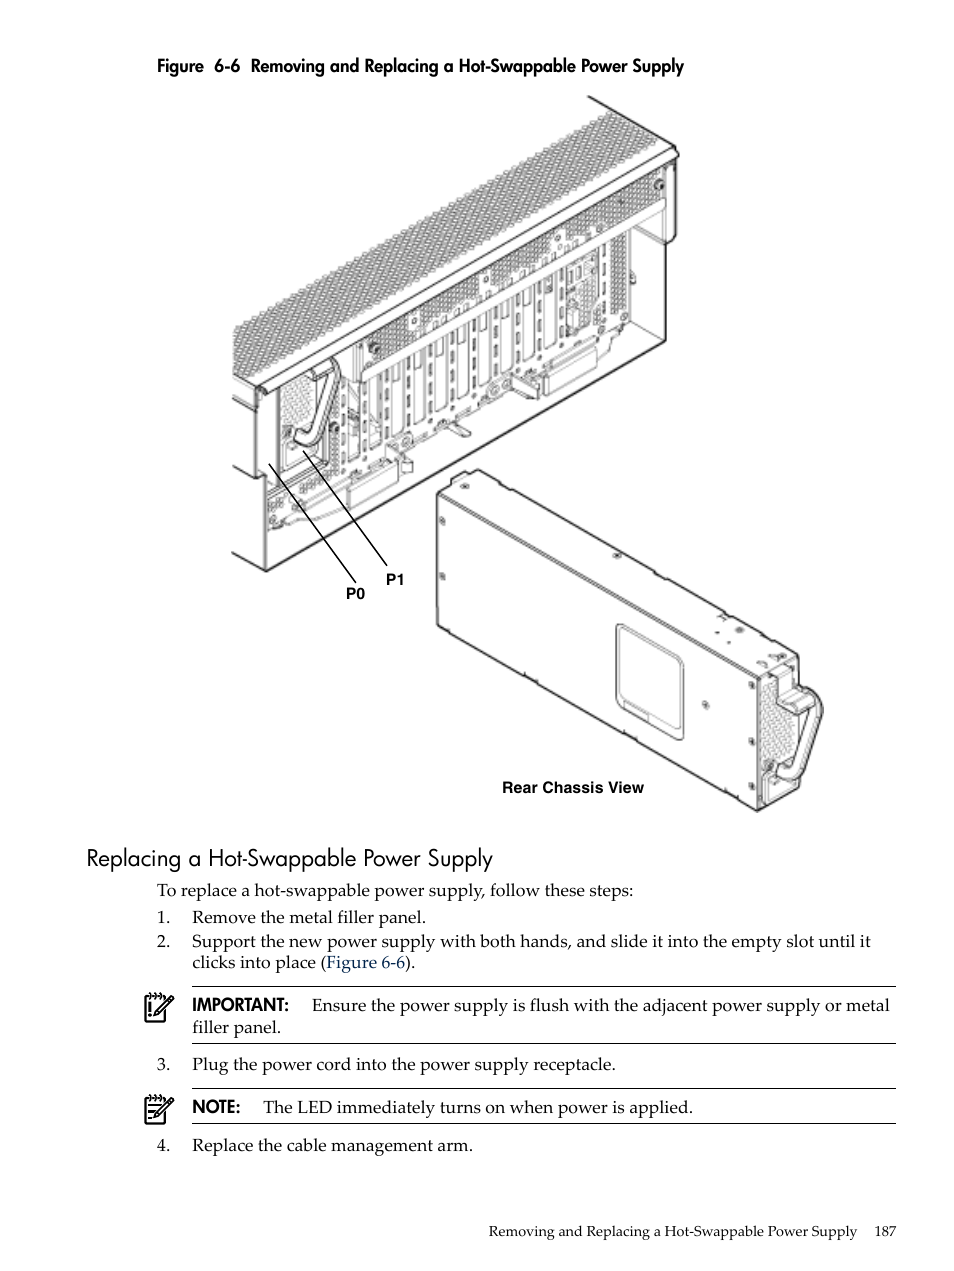 hp integrity rx3600 page187 replacing a hot swappable power supply, figure 6 6 hp integrity